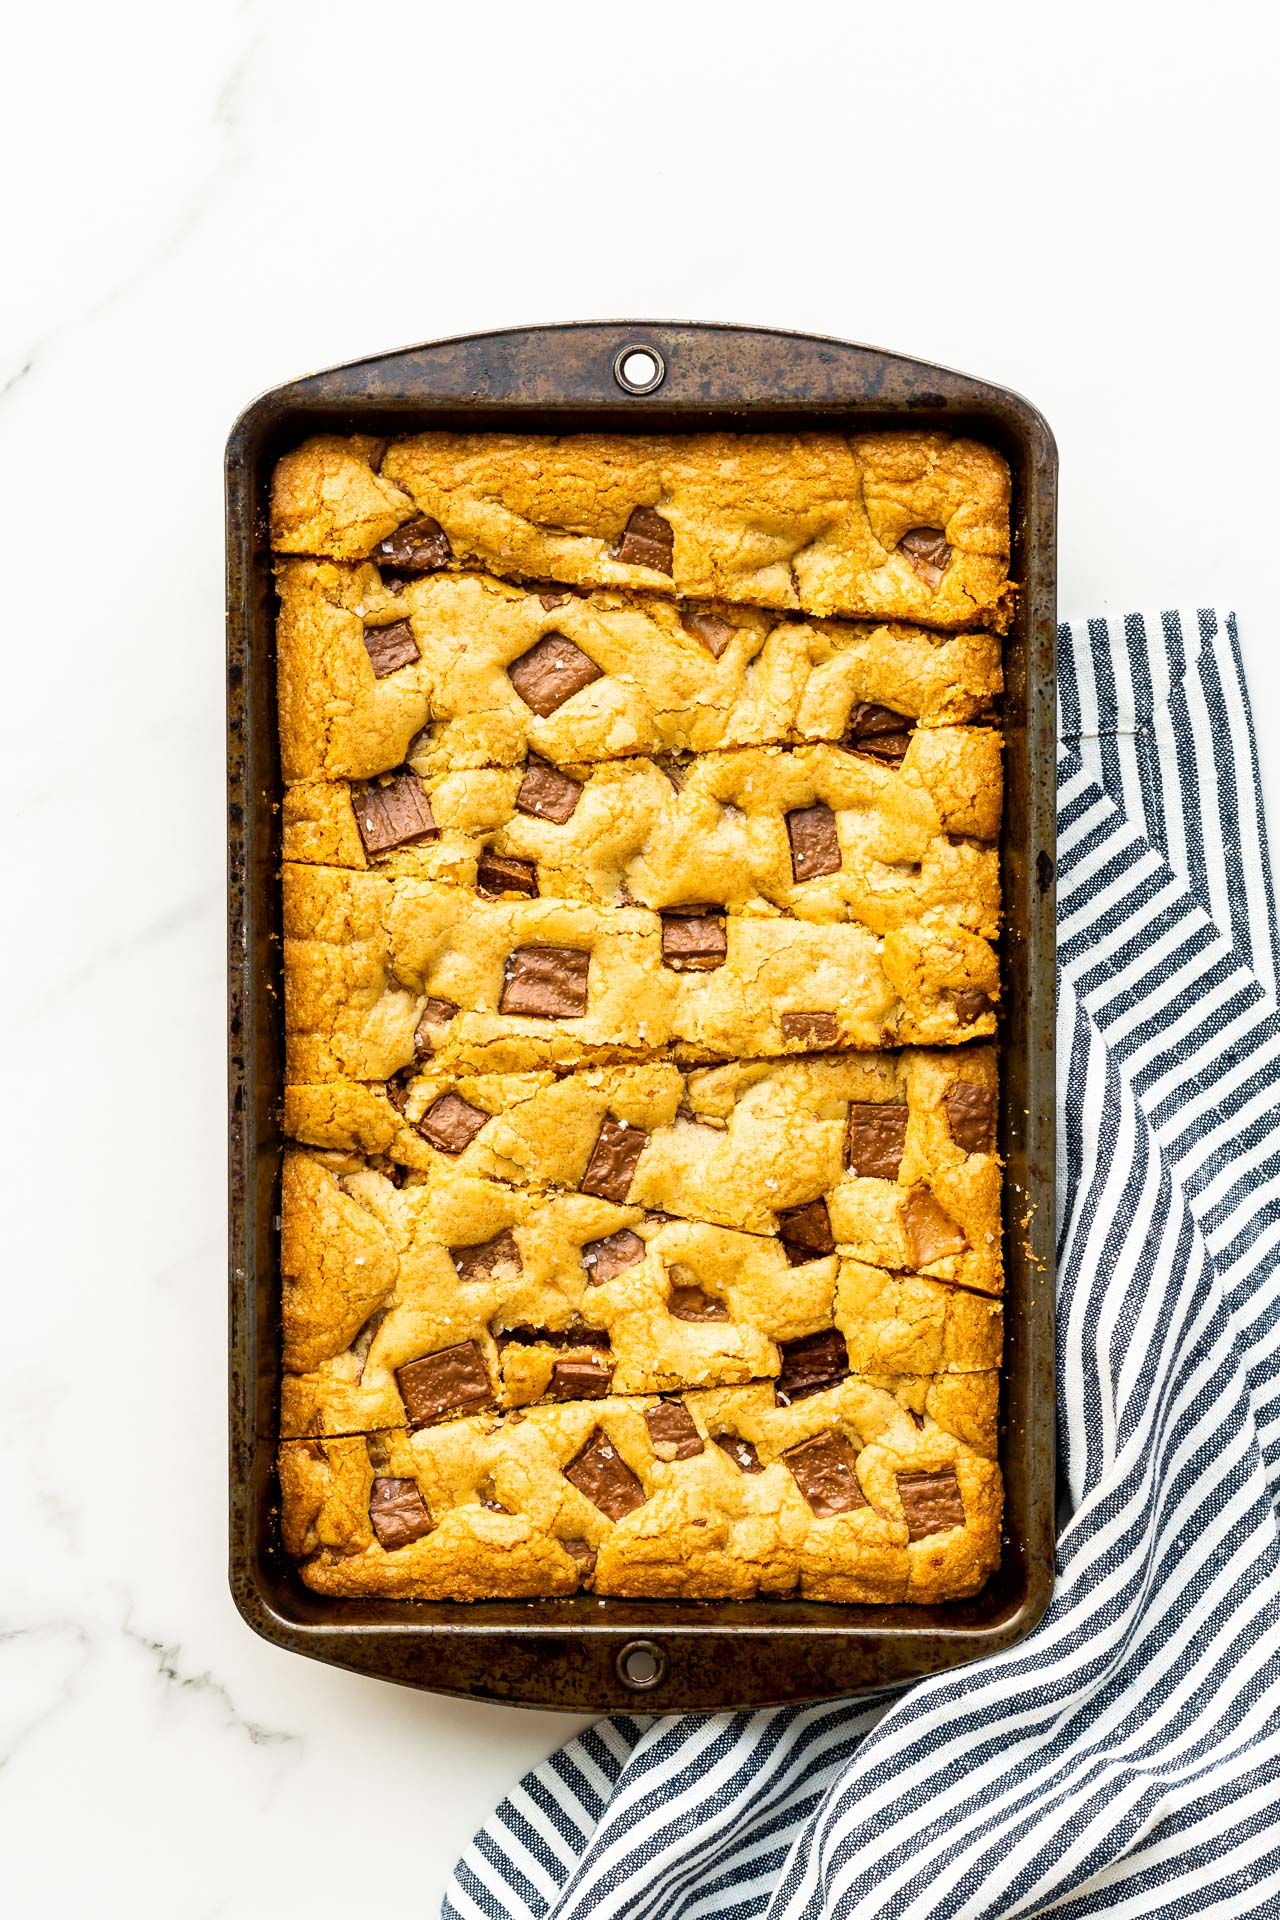 Skor blondie bars baked in a rectangular pan and cut into triangular strips